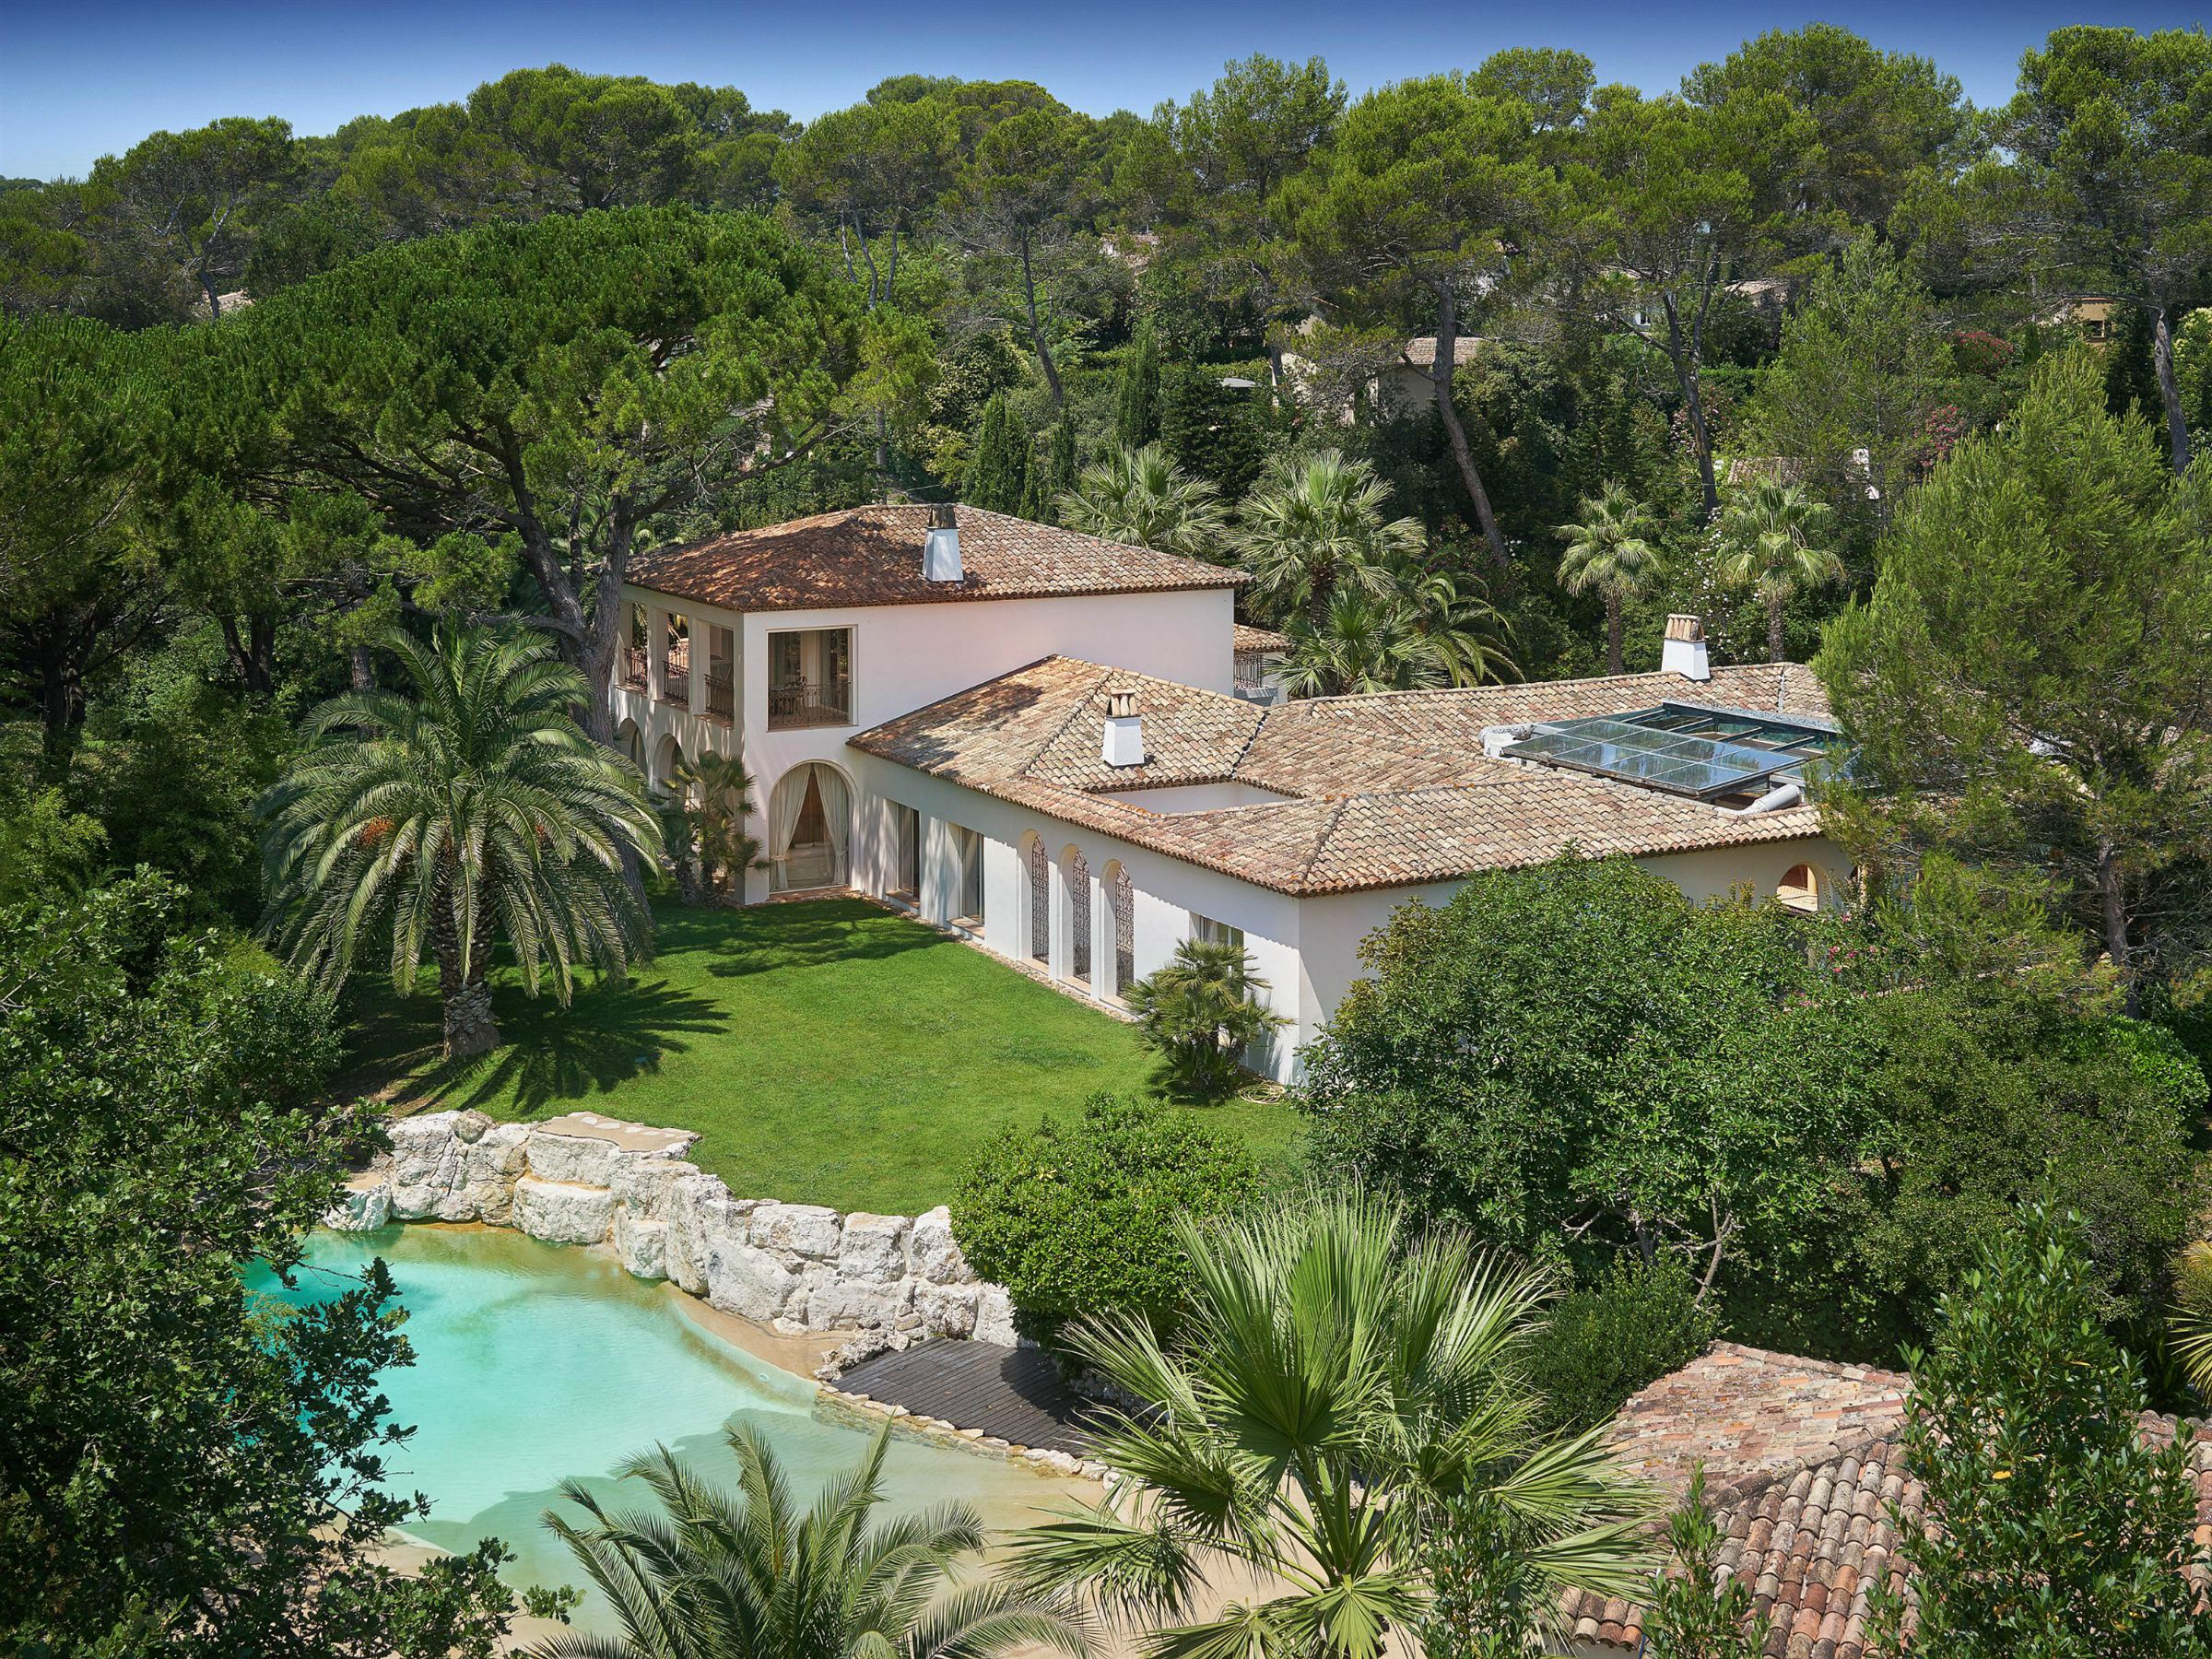 Property For Sale at Splendid Mediterranean villa with enchanting setting